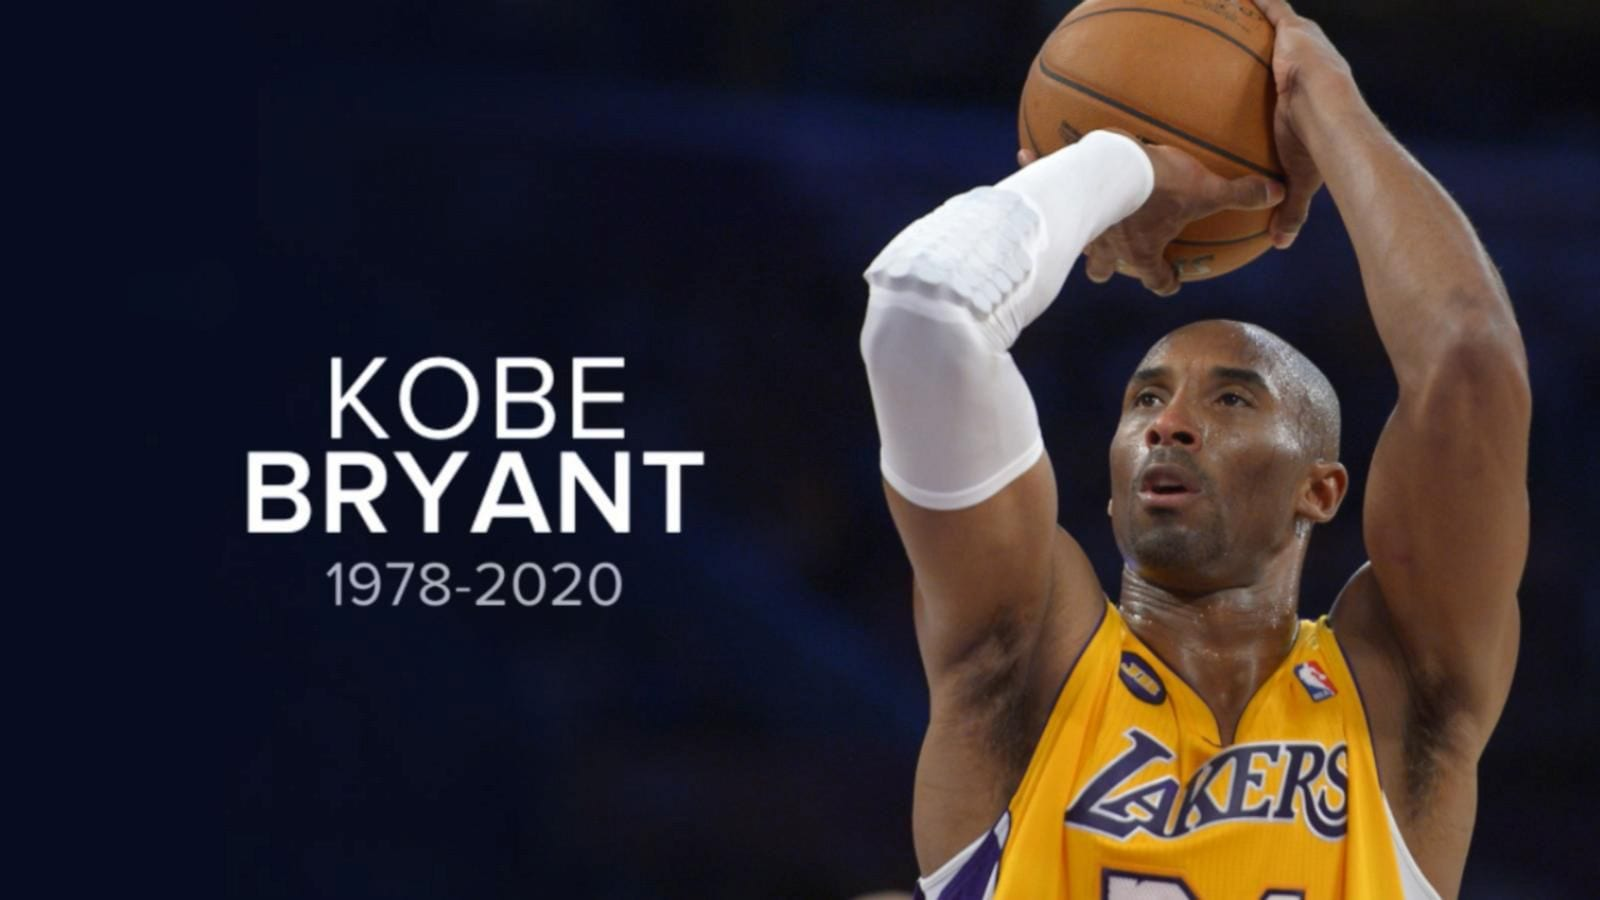 10 Kobe Bryant Life Lessons We Should All Learn And Remember